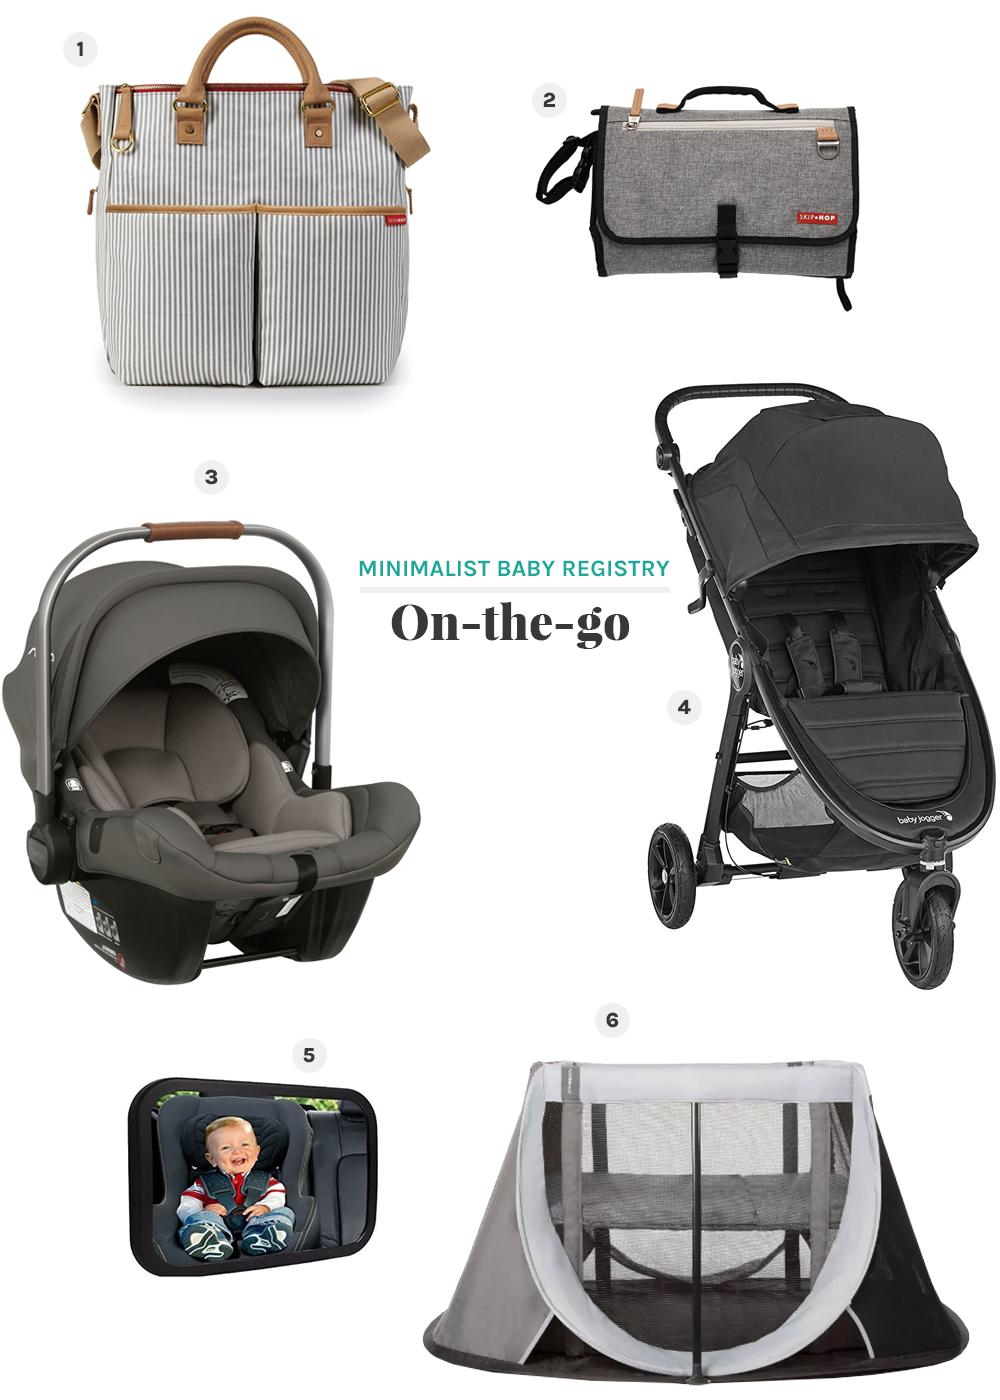 on-the-go minimalist baby registry from the faux martha